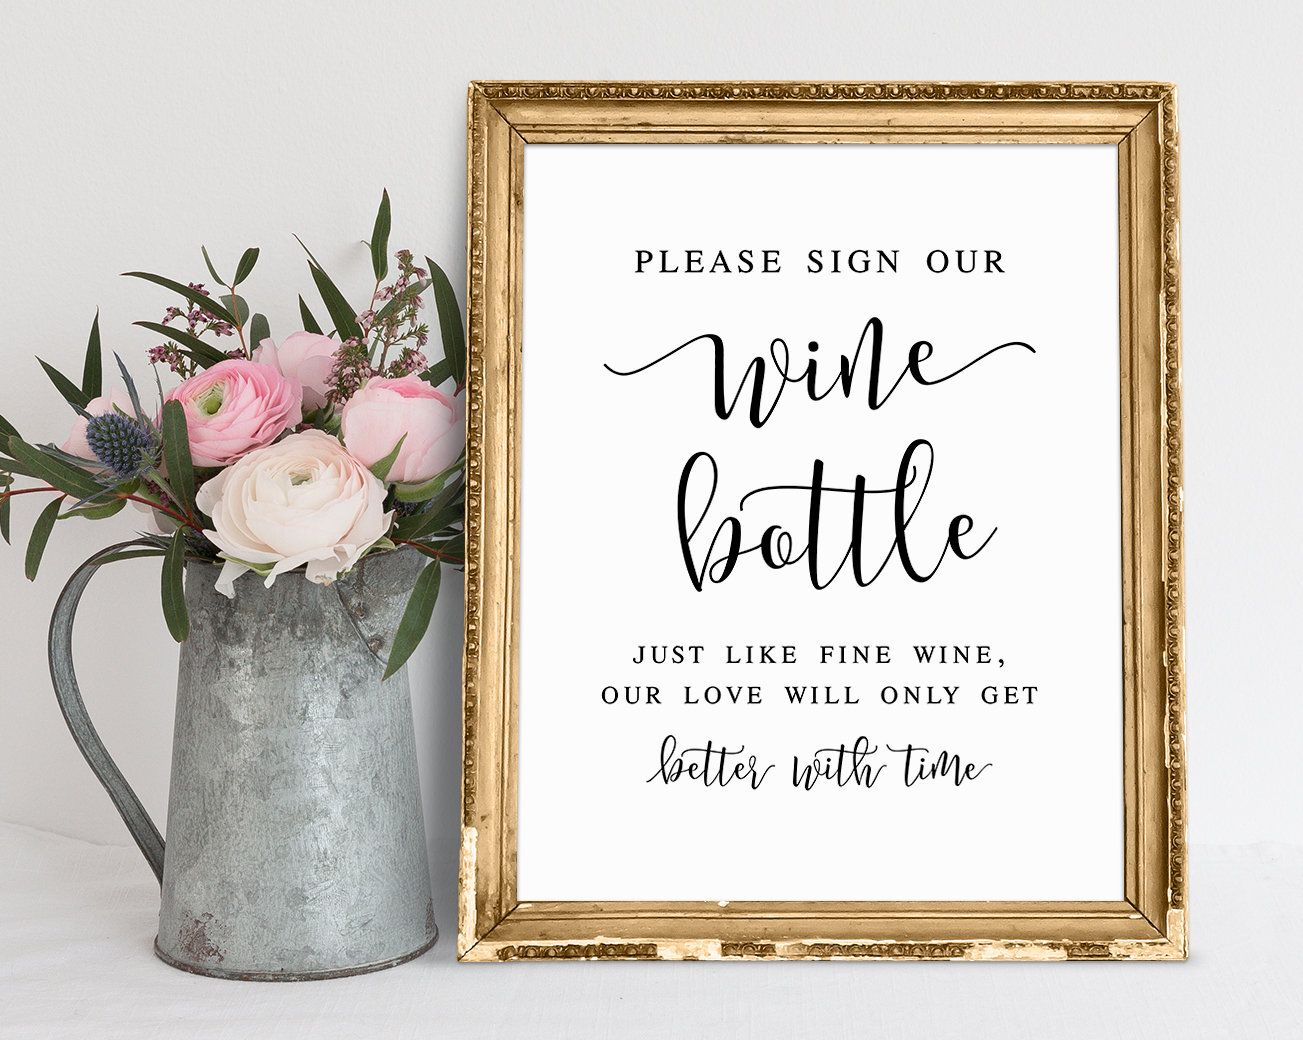 Please Sign Our Wine Bottle Just Like Fine Wine Our Love Will